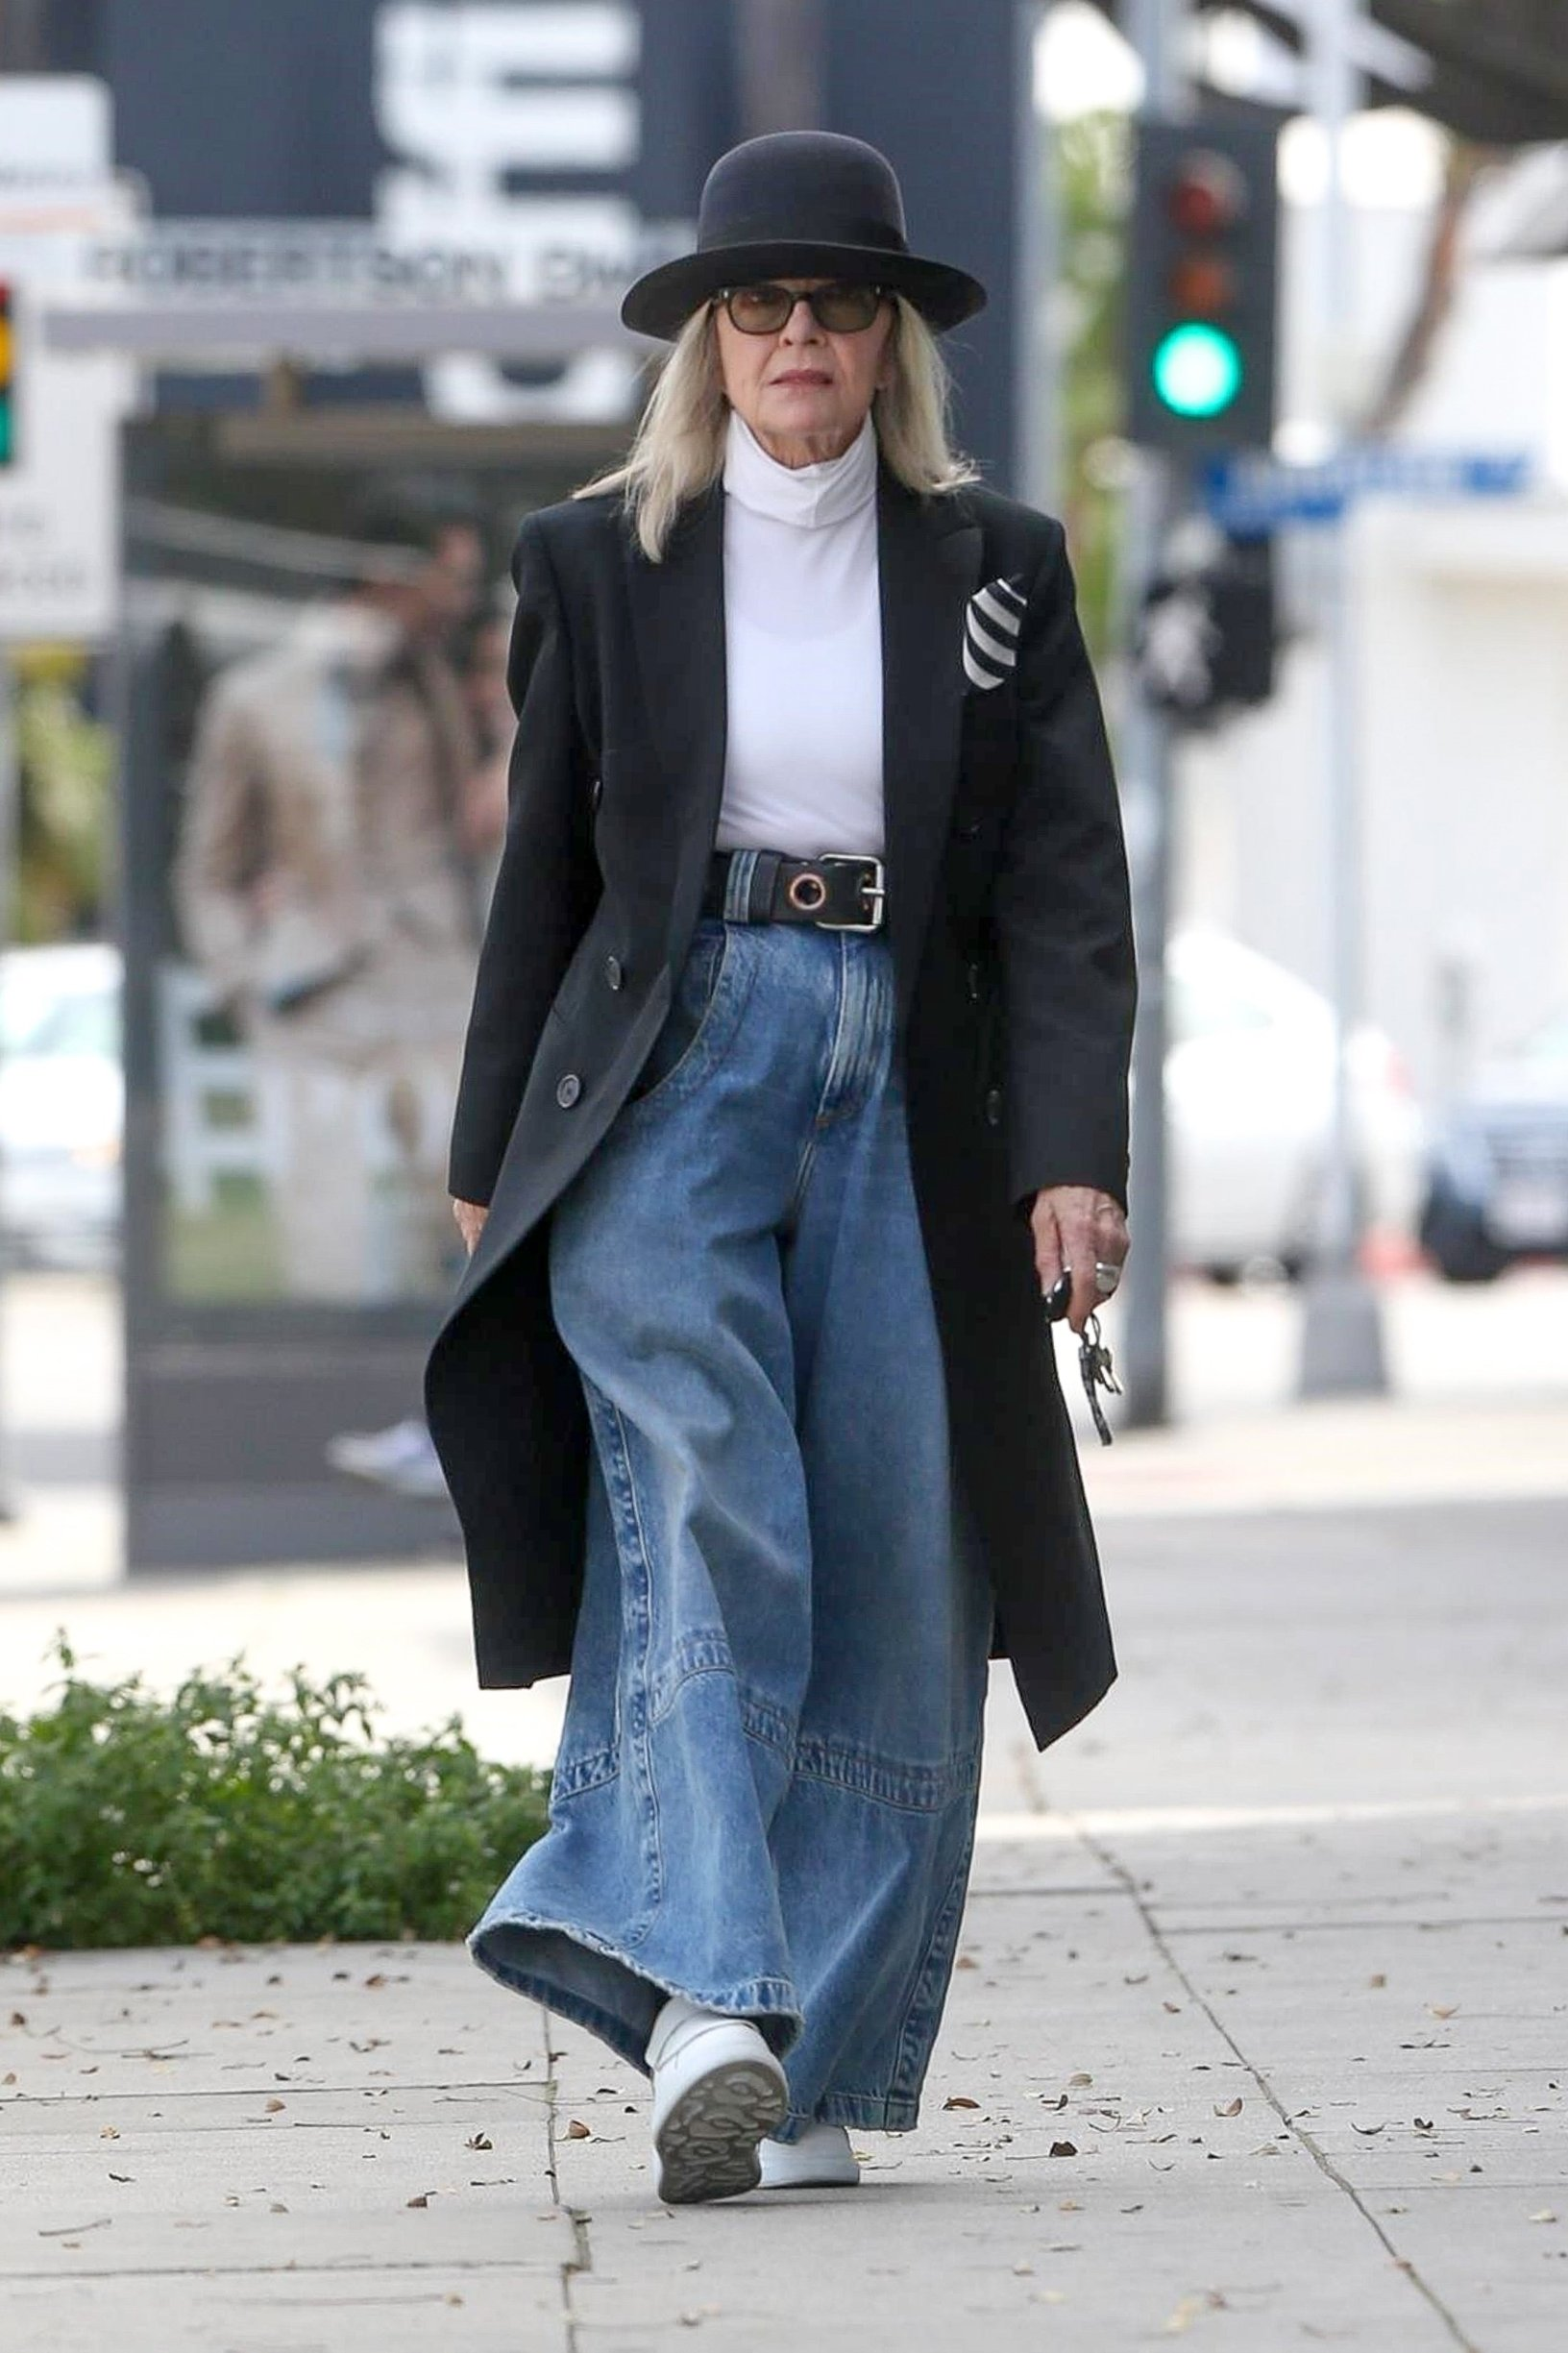 Beverly Hills, CA  - *EXCLUSIVE*  - Diane Keaton displays her unique style while getting some shopping done this morning.  Pictured: Diane Keaton  BACKGRID USA 1 APRIL 2019, Image: 423618770, License: Rights-managed, Restrictions: , Model Release: no, Credit line: Profimedia, Backgrid USA